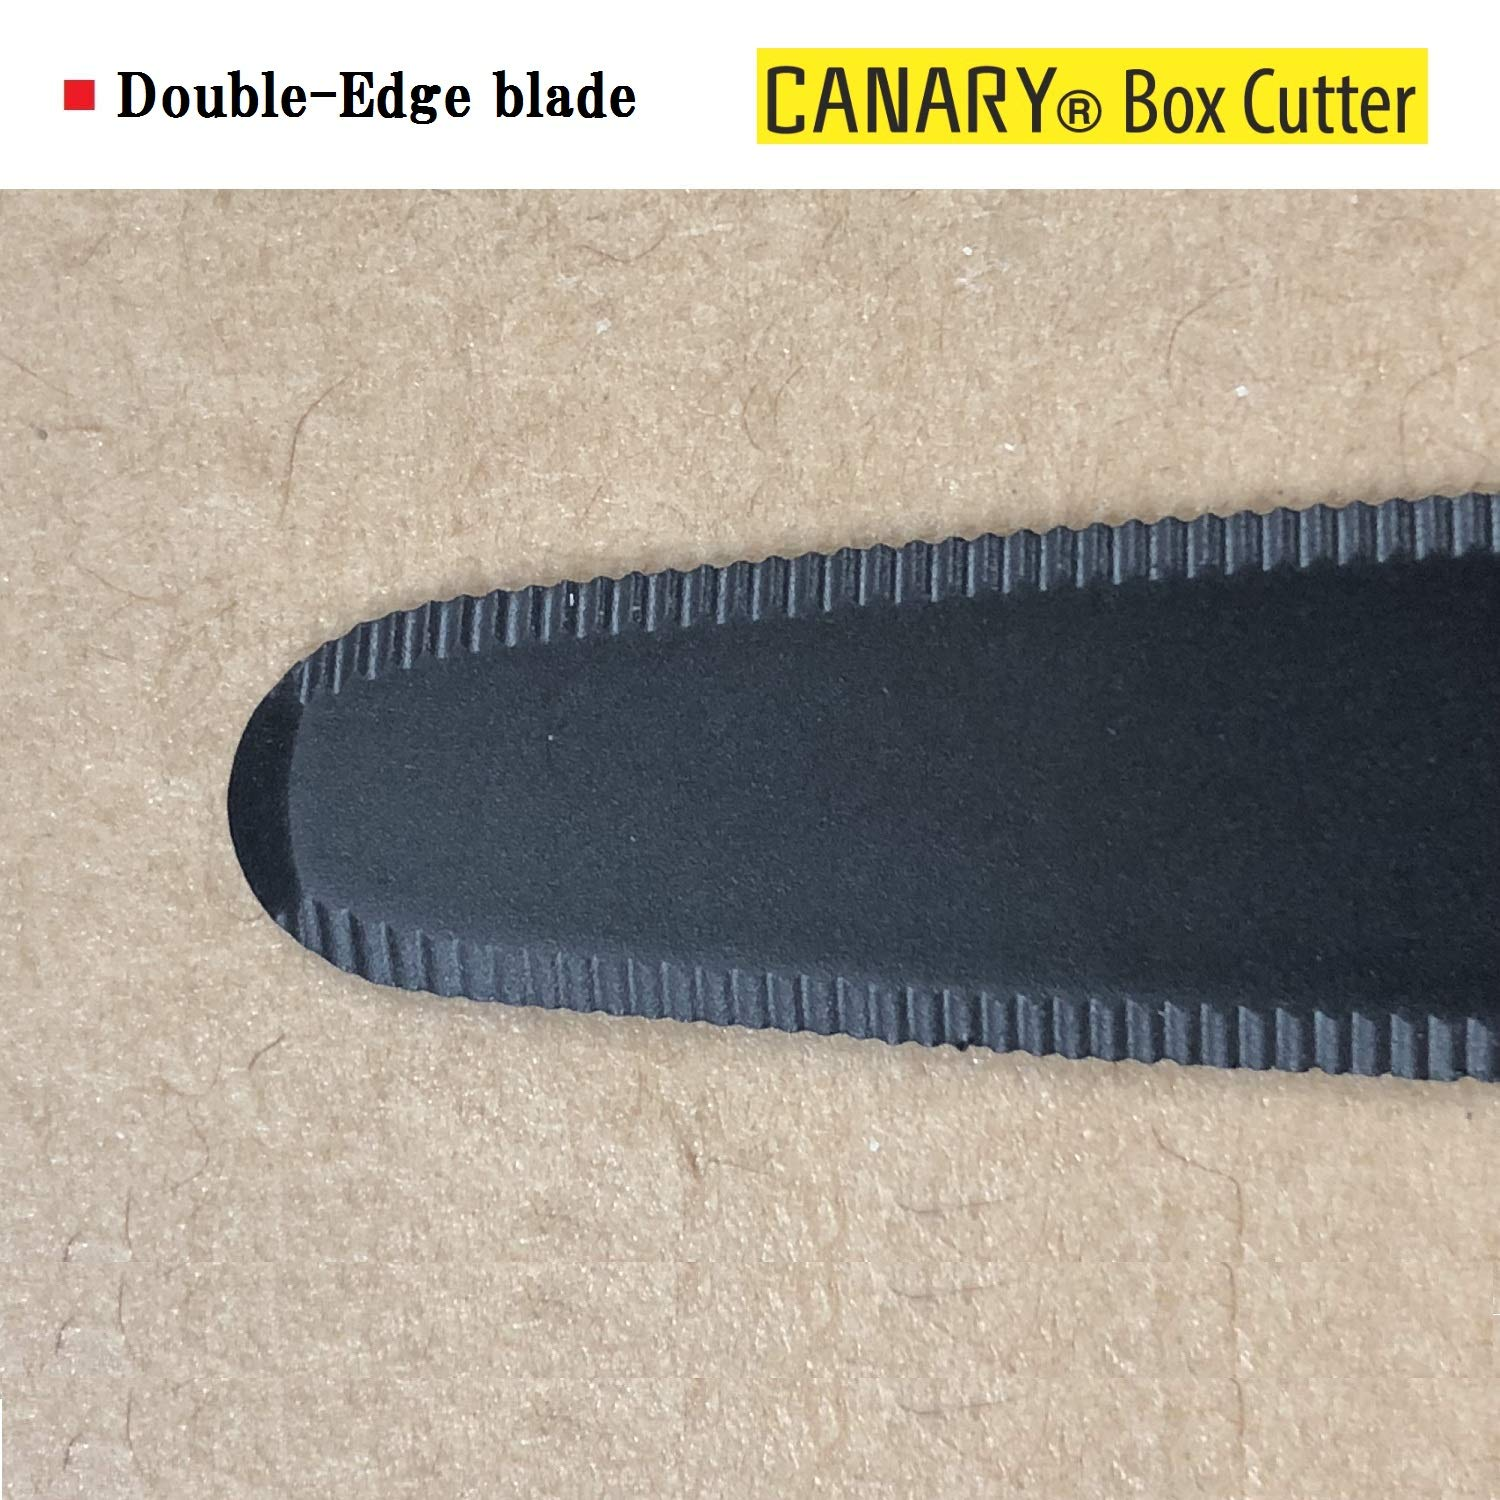 CANARY Corrugated Cardboard Cutter''Dan Chan'' [Non-Sticking Fluorine Coating], Yellow (DC-190F-1) (5 pcs) by CANARY (Image #4)